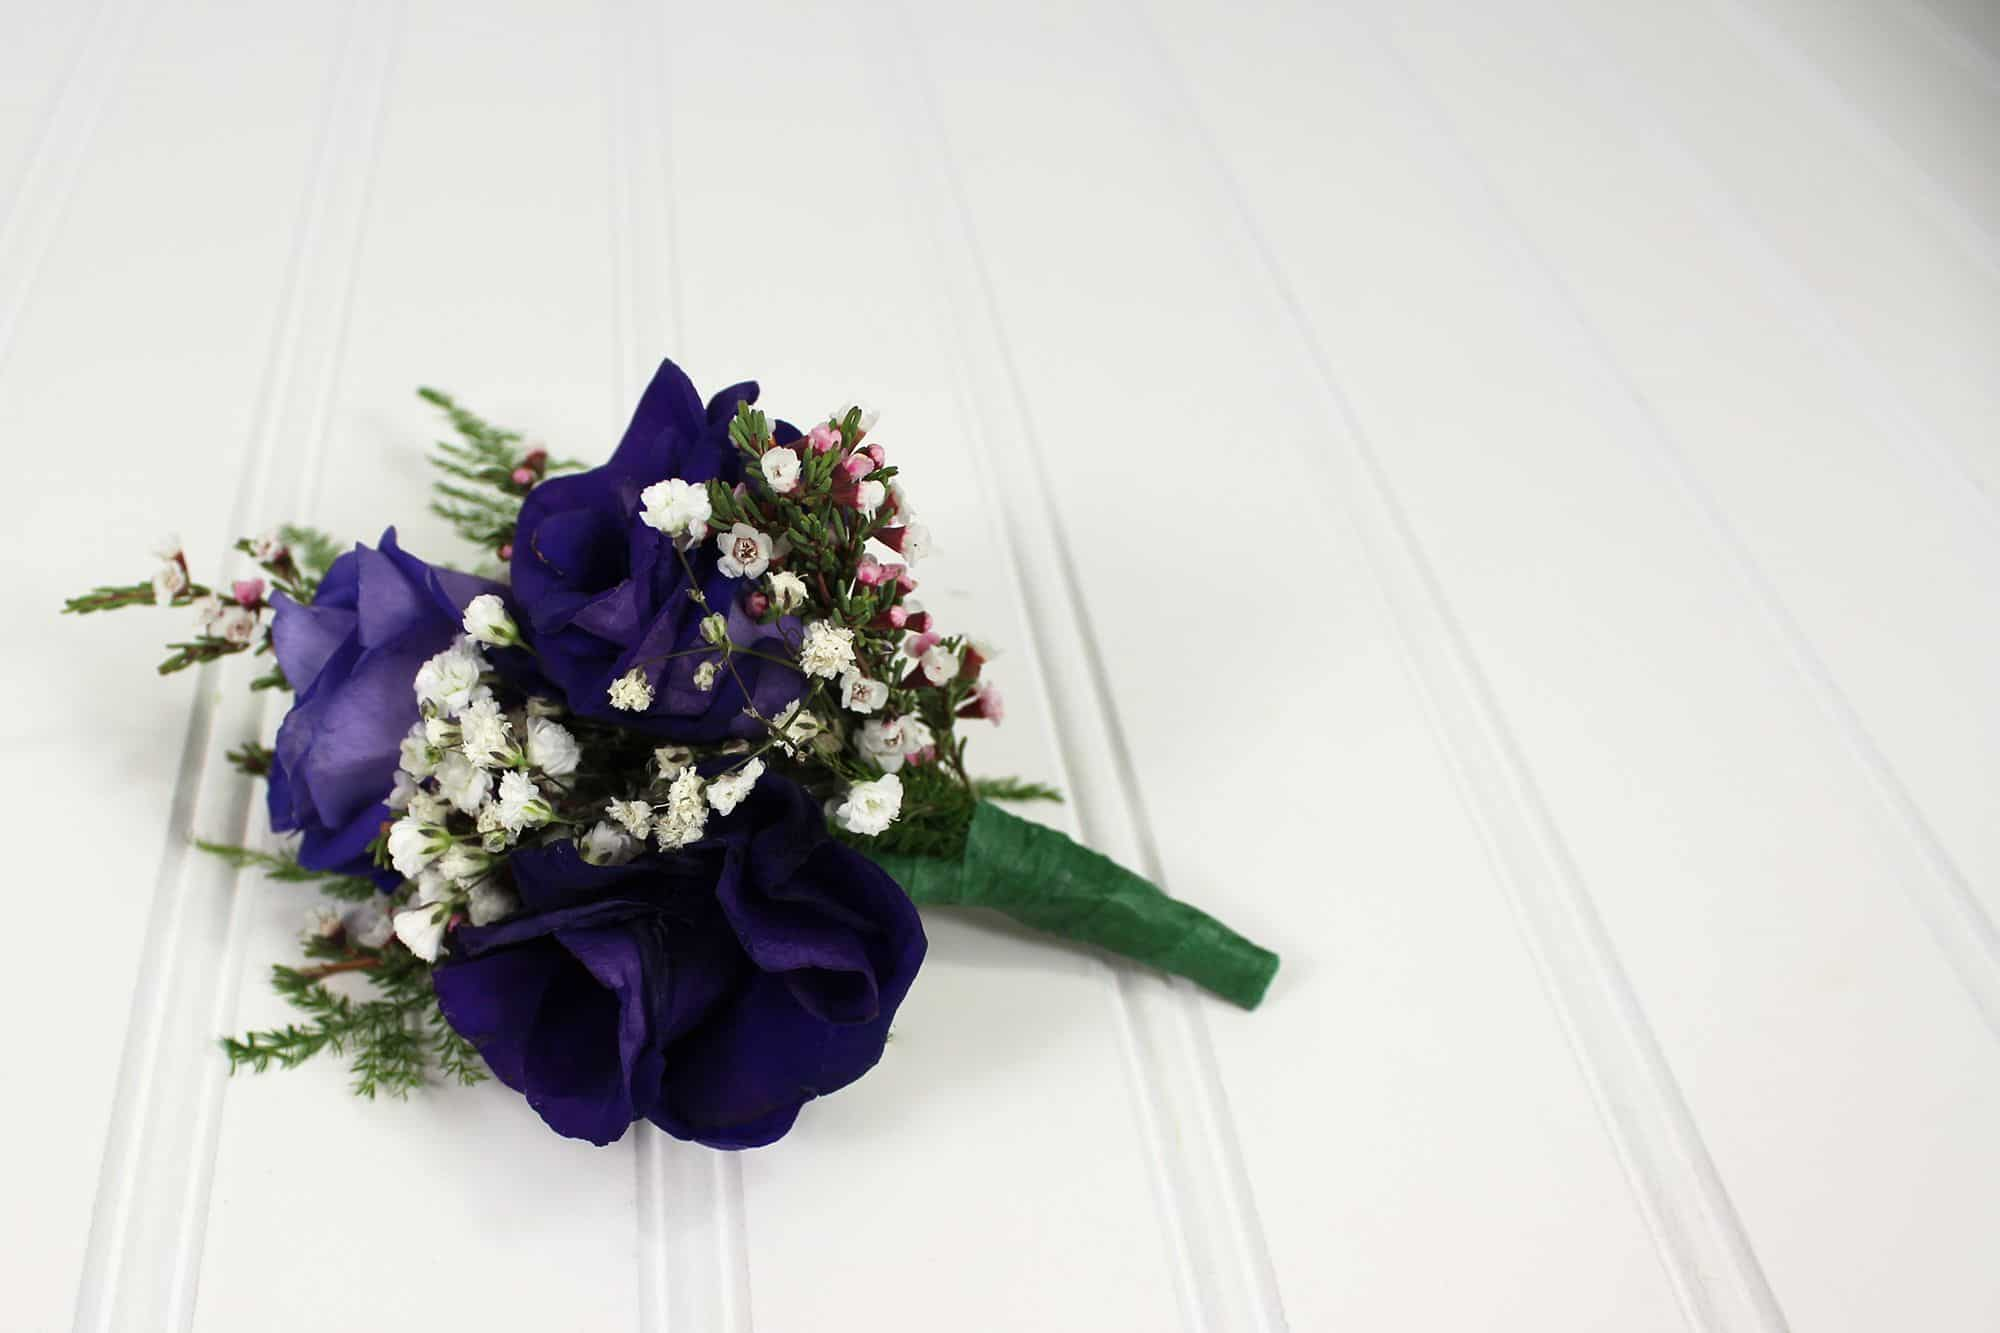 how to make a romantic boutonniere diy photo tutorial, Beautiful flower